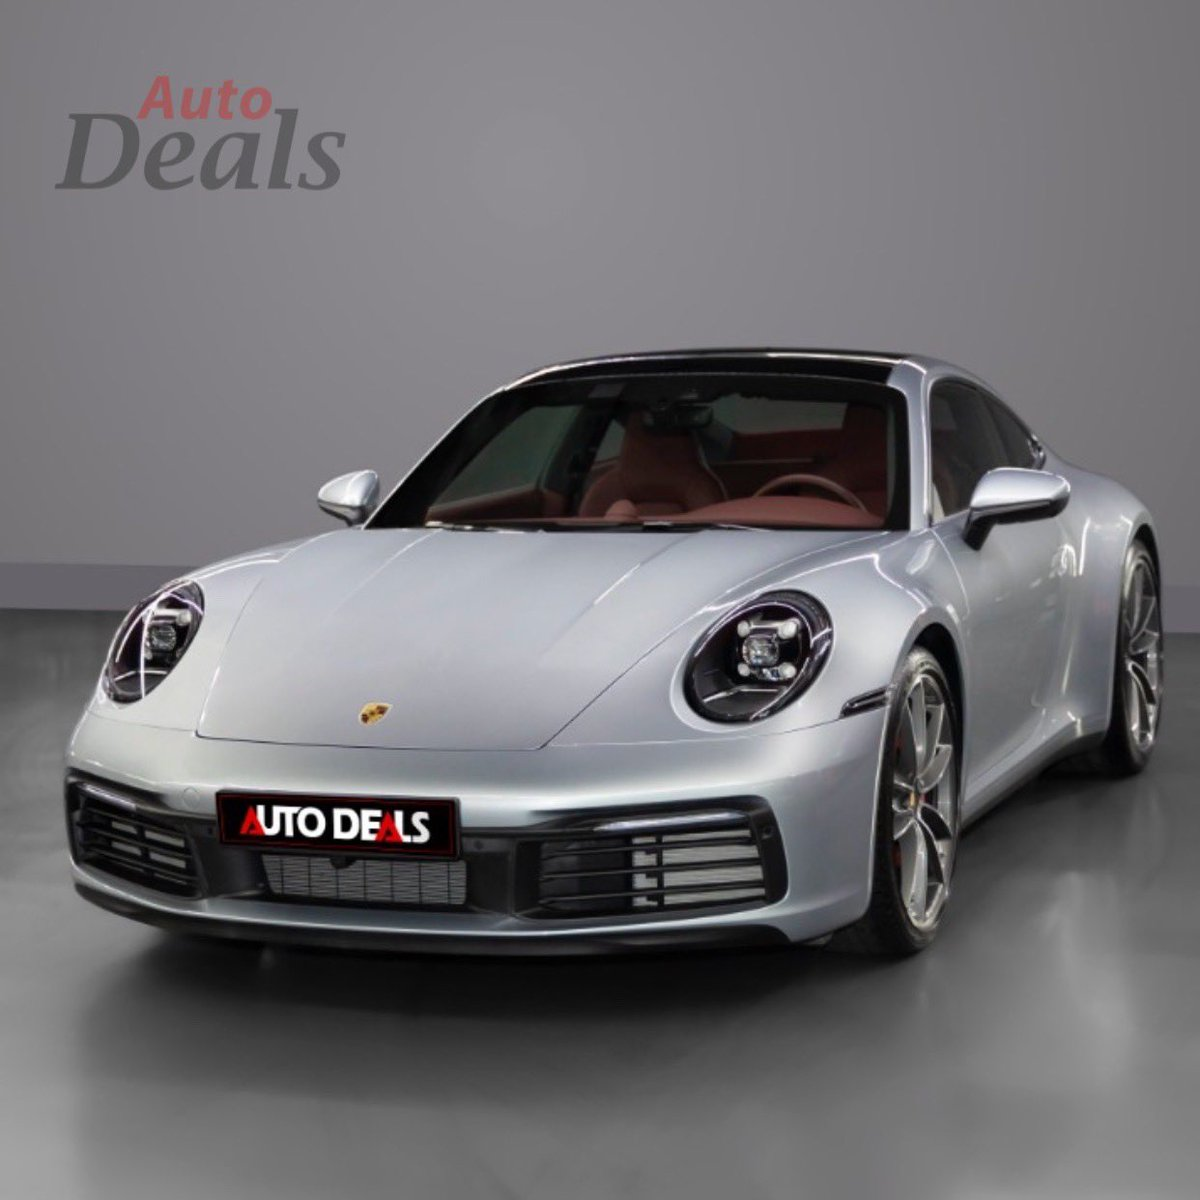 PORSCHE 911 CARRERA S  YEAR: 2020 SPECS: GCC MILEAGE: 4,250 KMS  World wide shipping available . FOR MORE DETAILS & INQUIRES . CONTACT US: +971 43333444 : +971 50 500 5004 . sales@autodealsuae.com Visit Our Website: http://www.autodealsuae.compic.twitter.com/n5uP0IUjj6